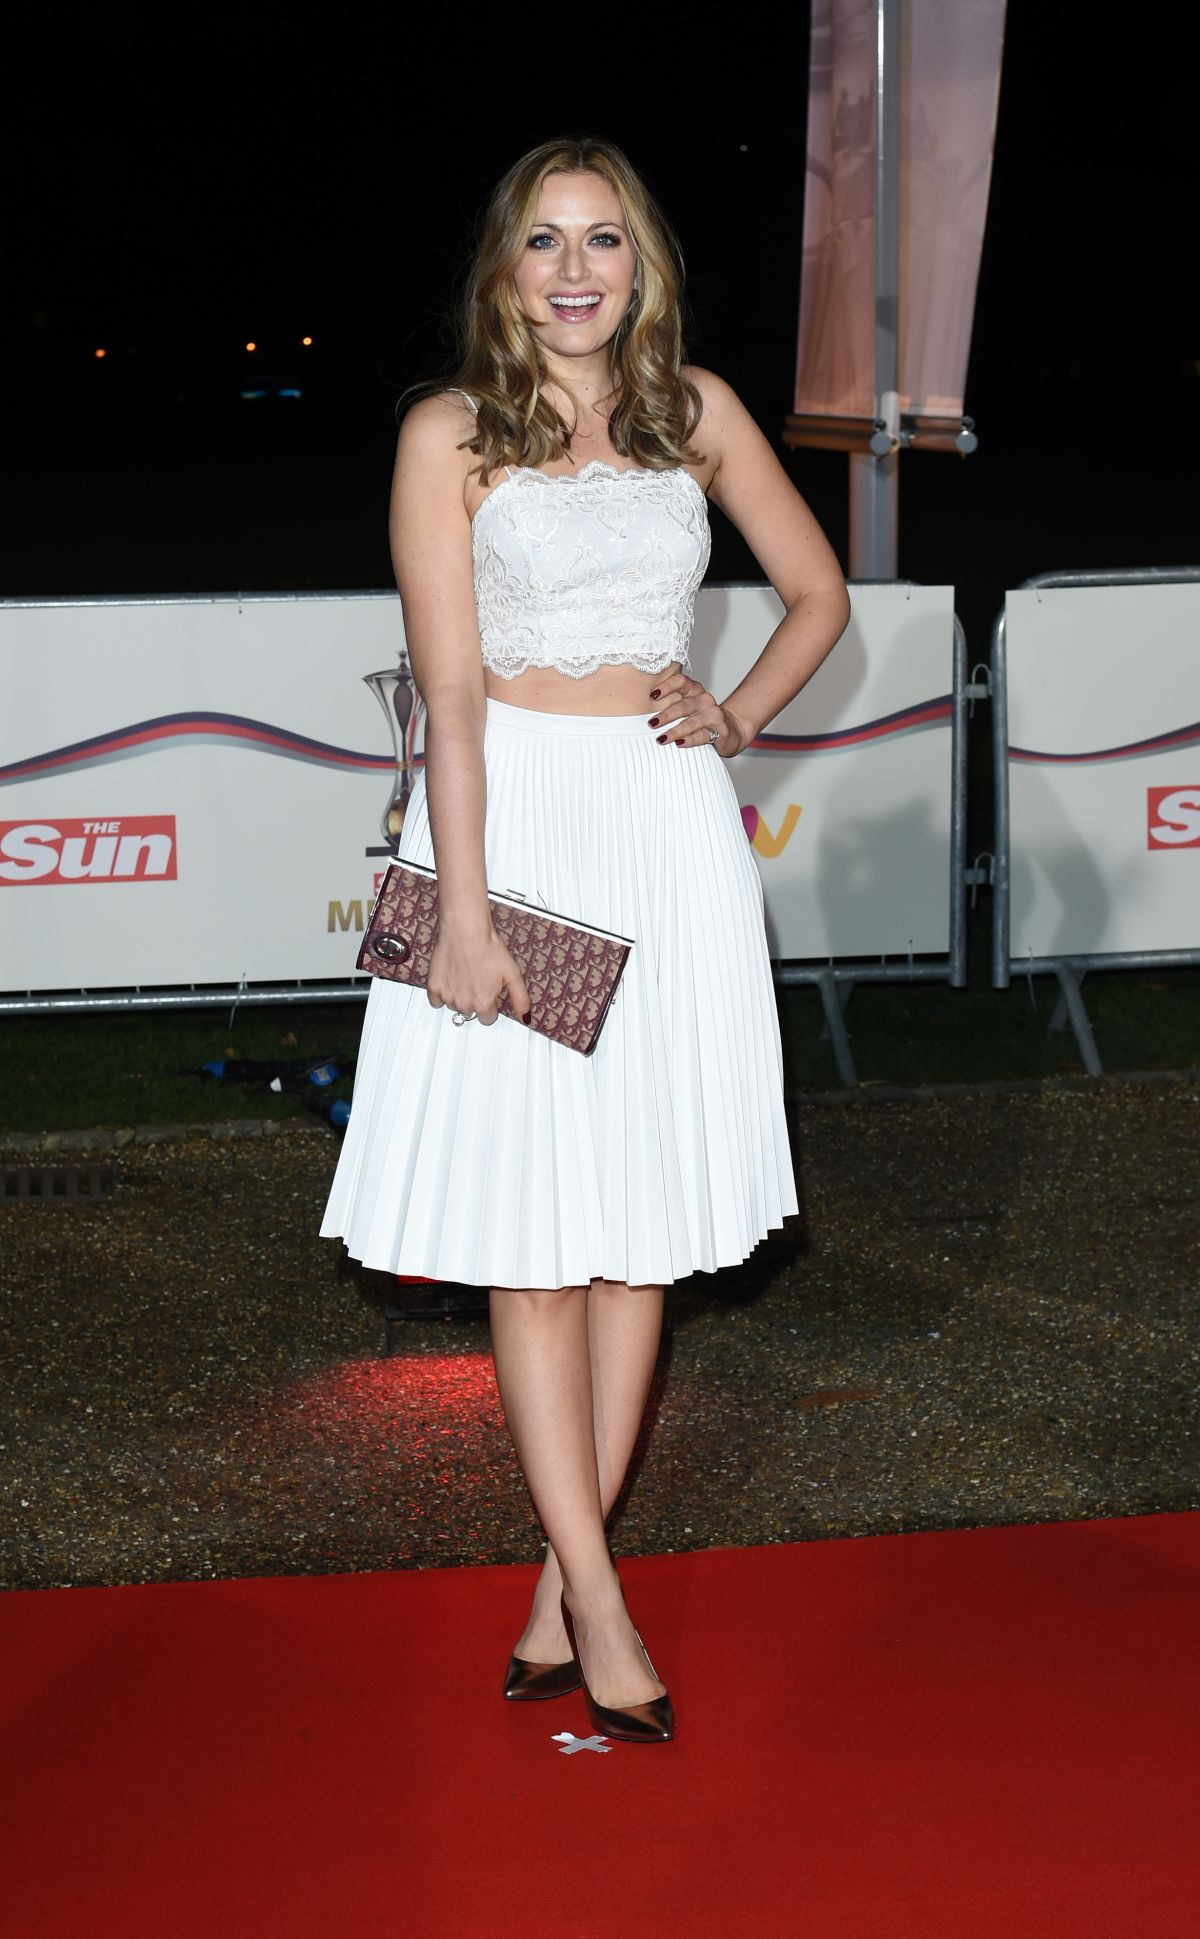 OLIVIA LEE at A Night of Heroes: The Sun Military Awards in London